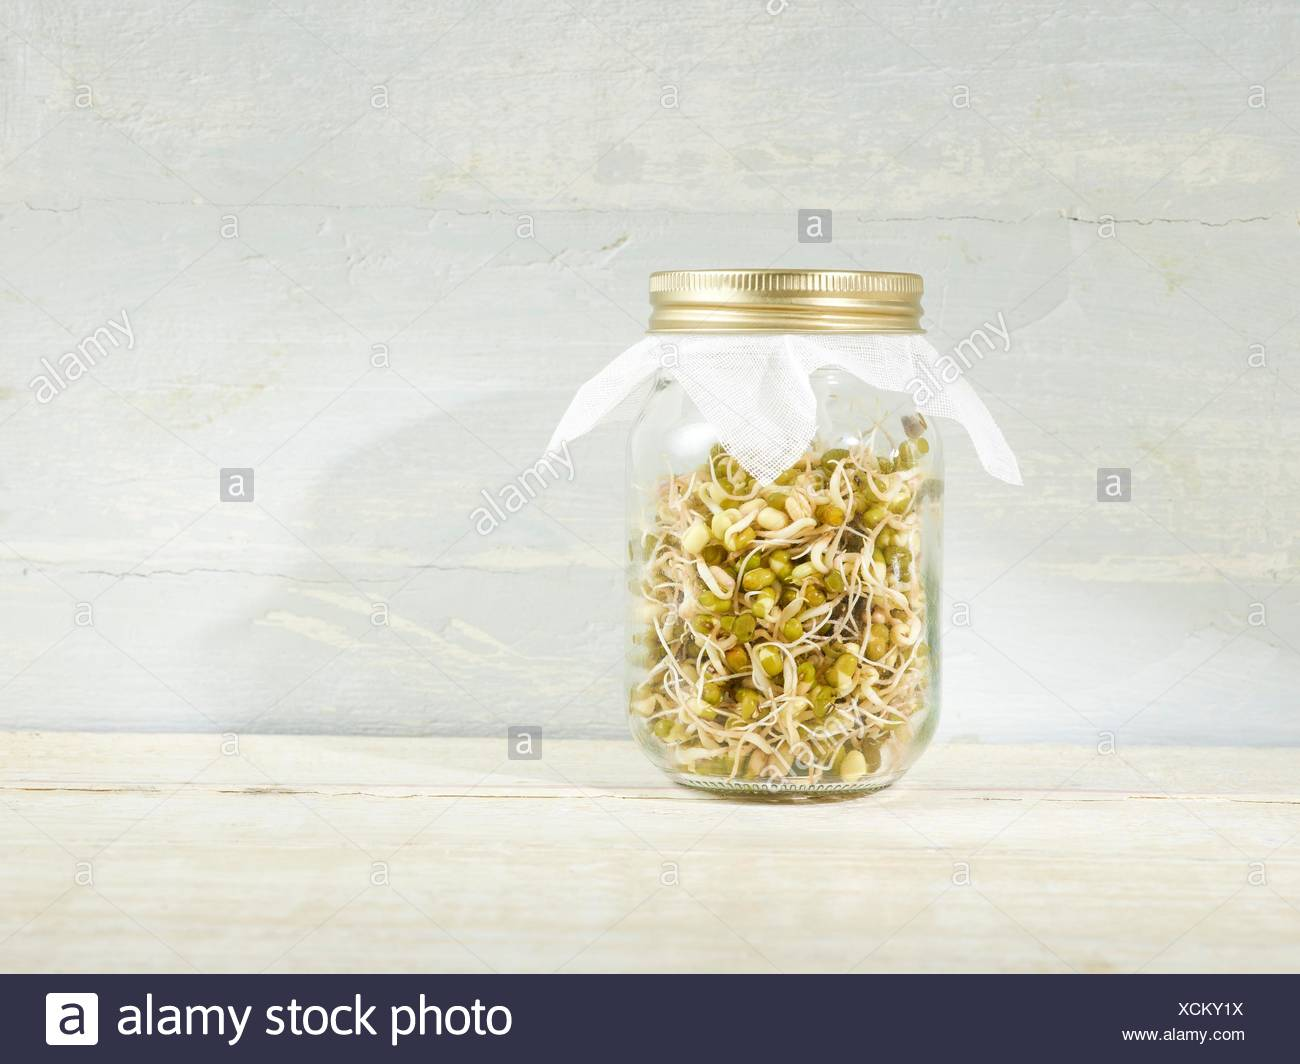 Sprouting mung beans in a jar. - Stock Image